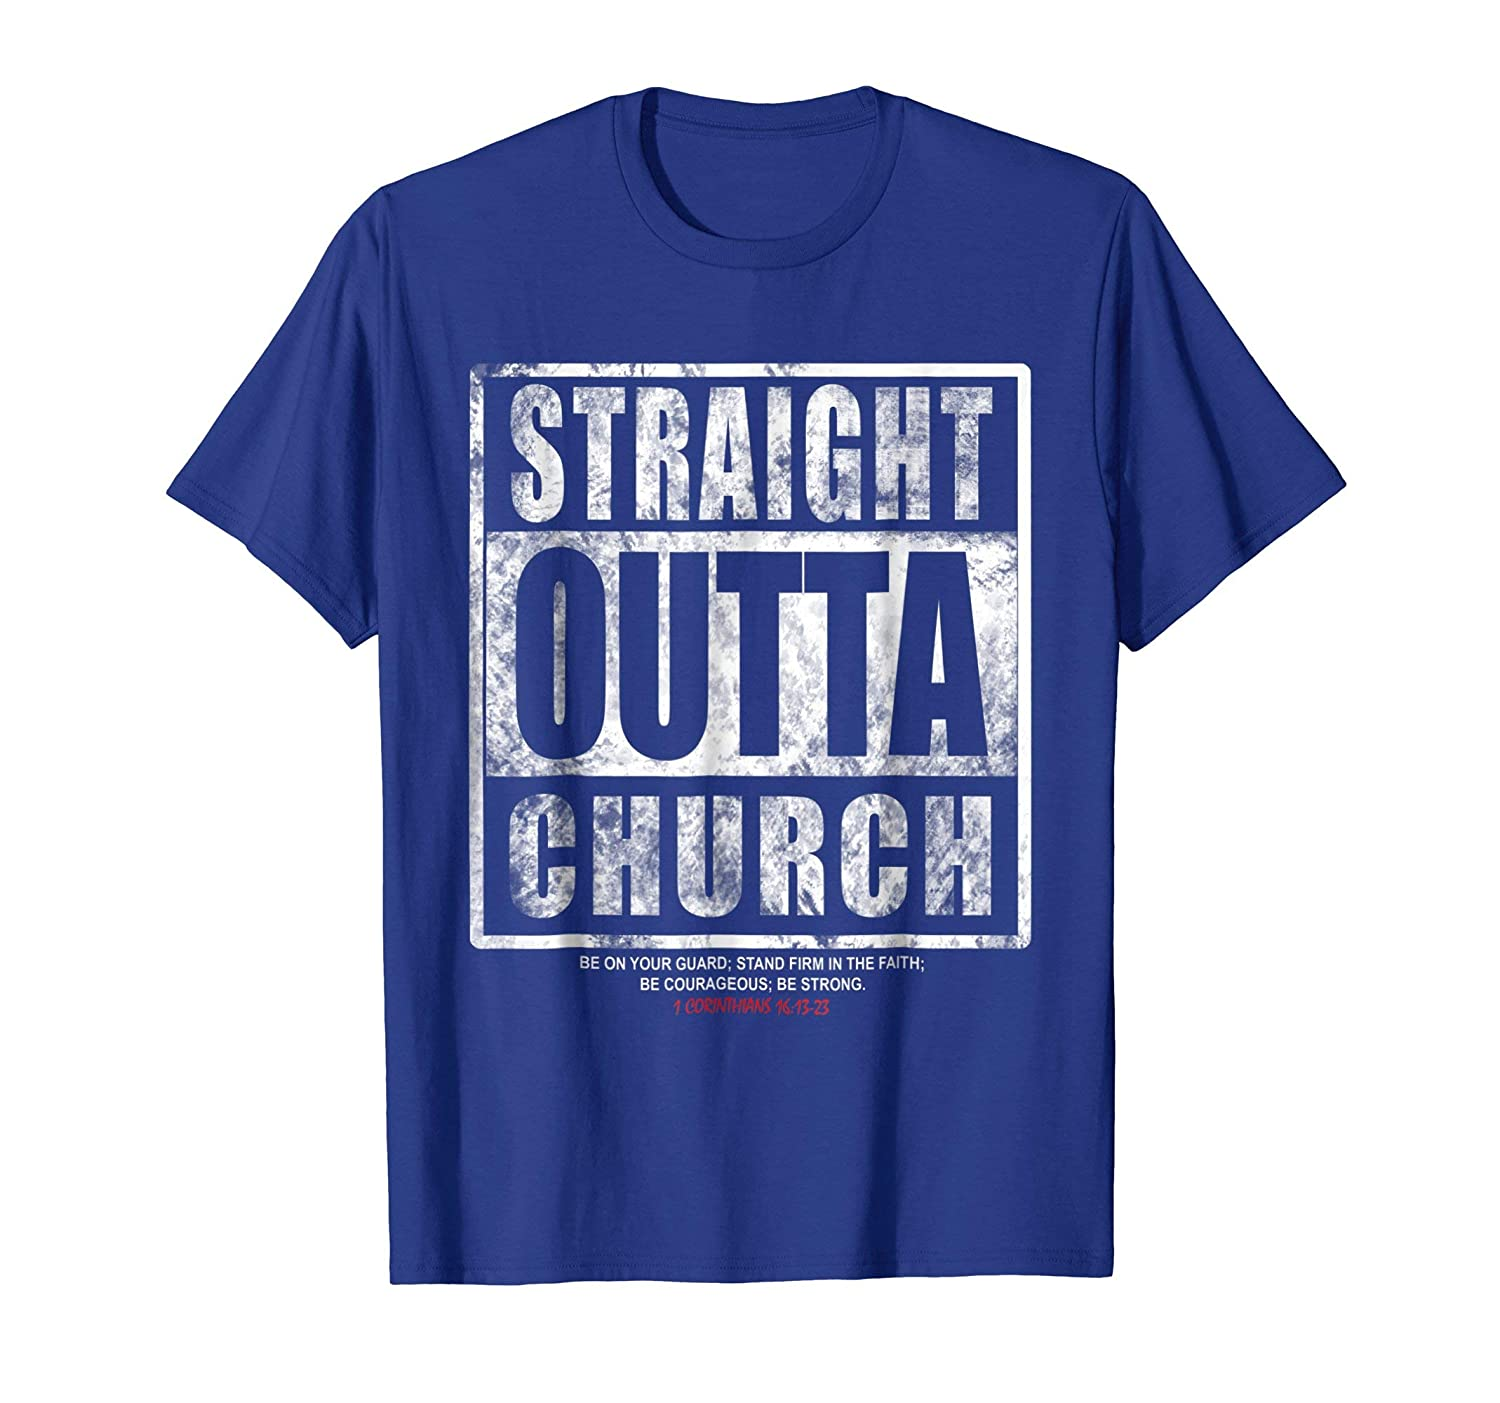 Christian t shirt  Straight Outta Shirt  Church t shirt